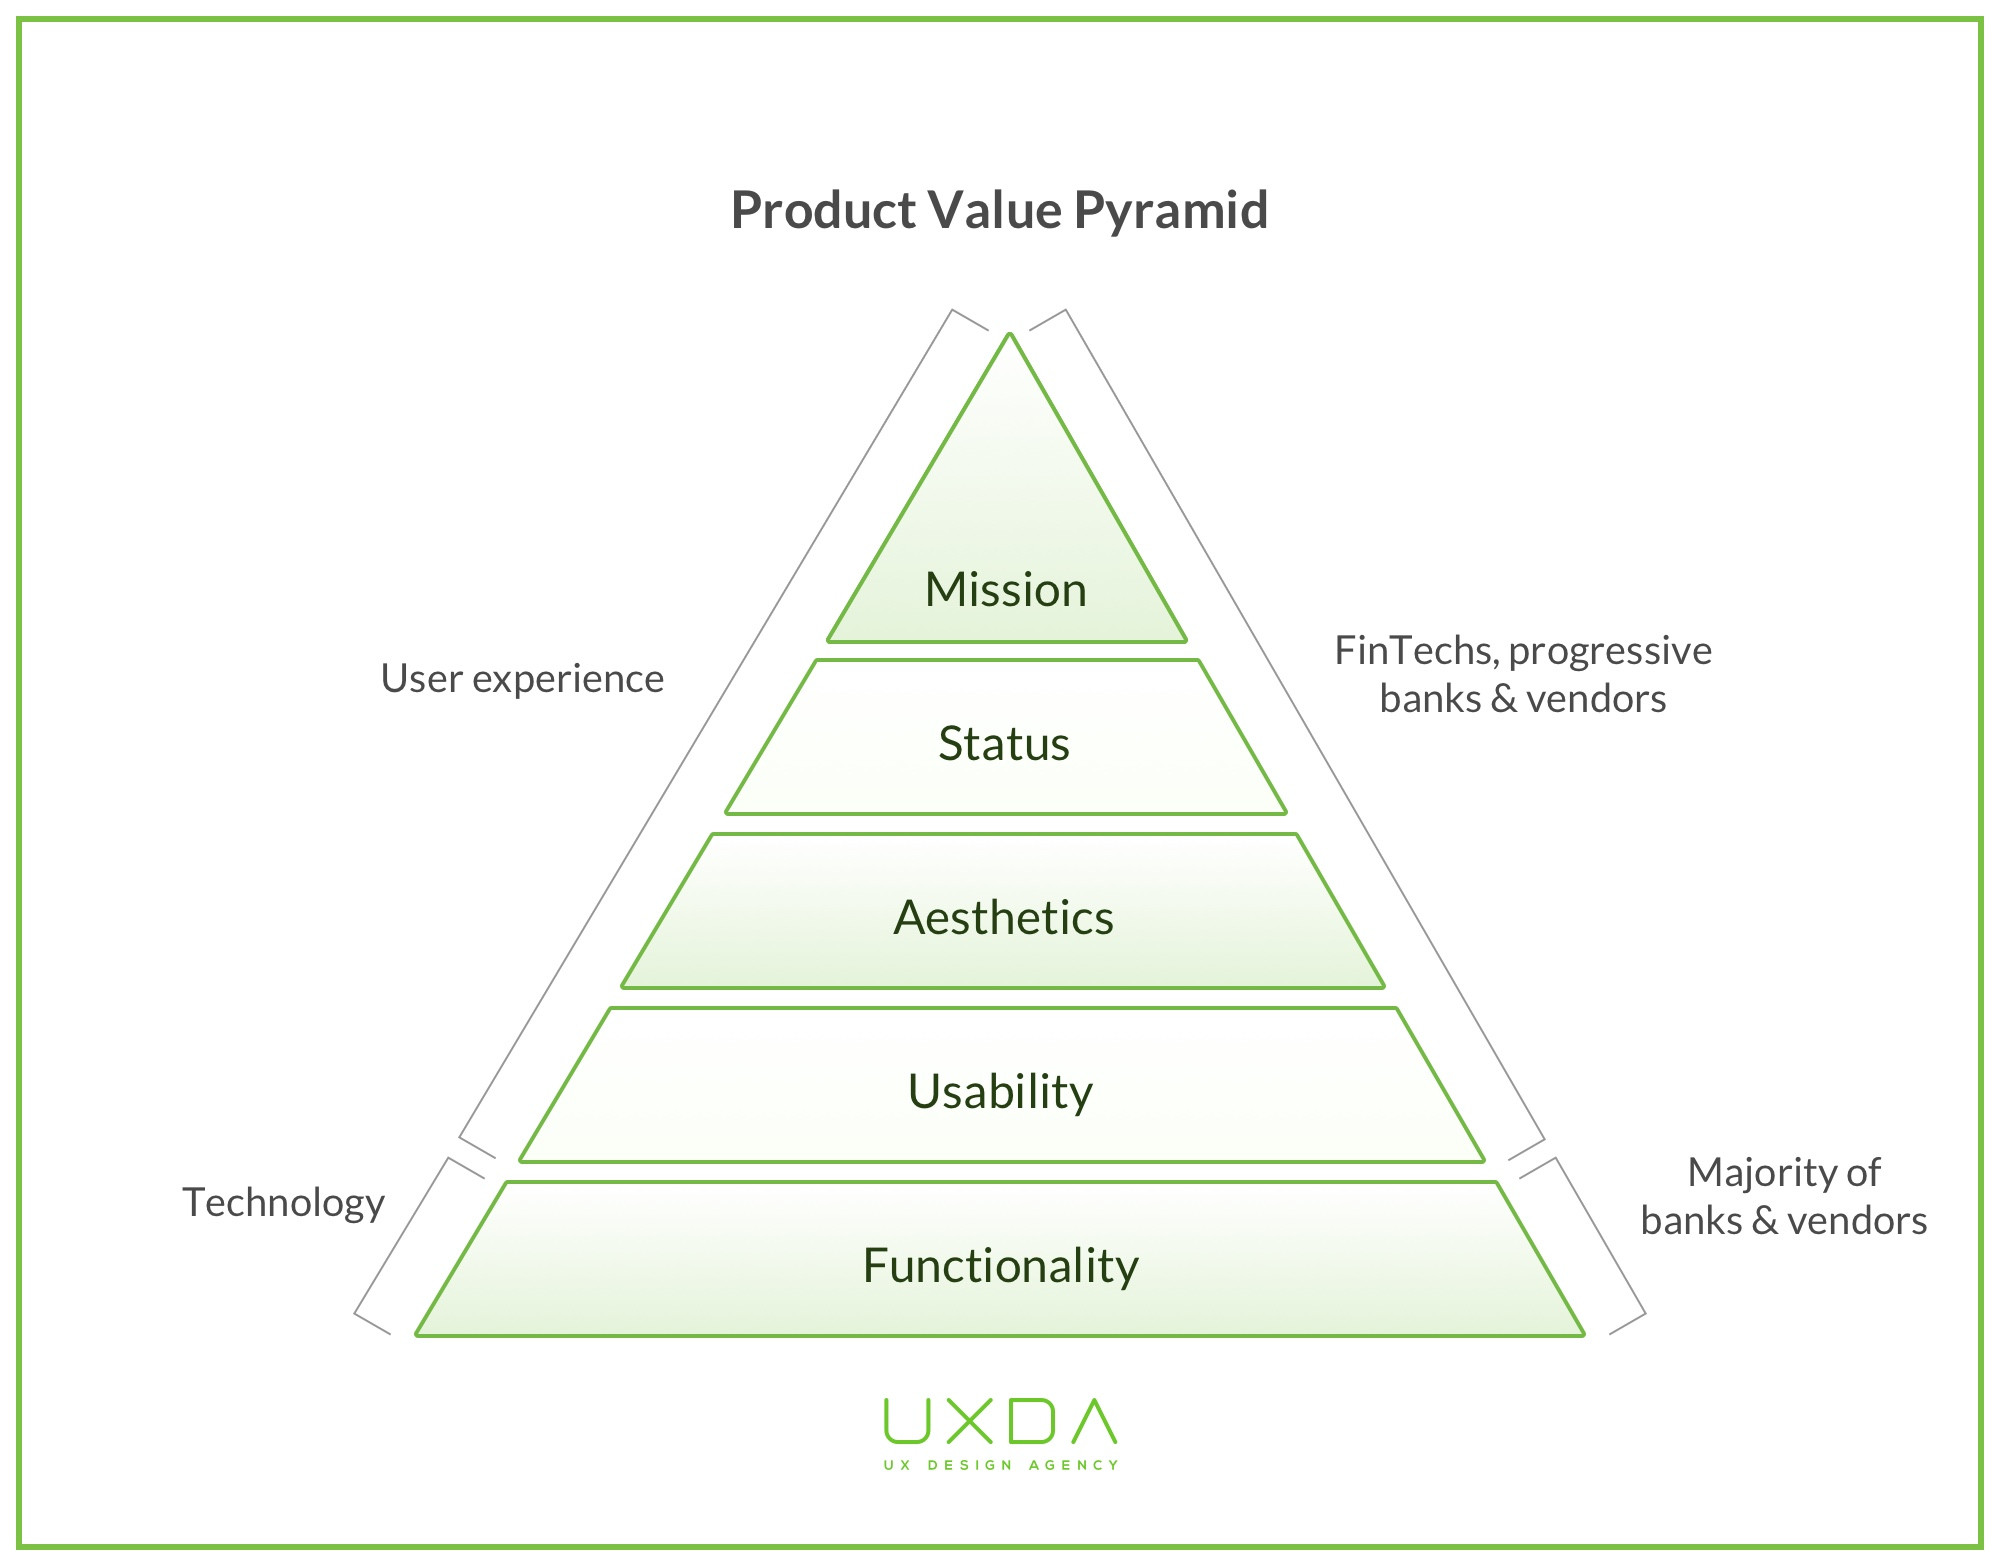 ux-financial-design-product-value-pyramid